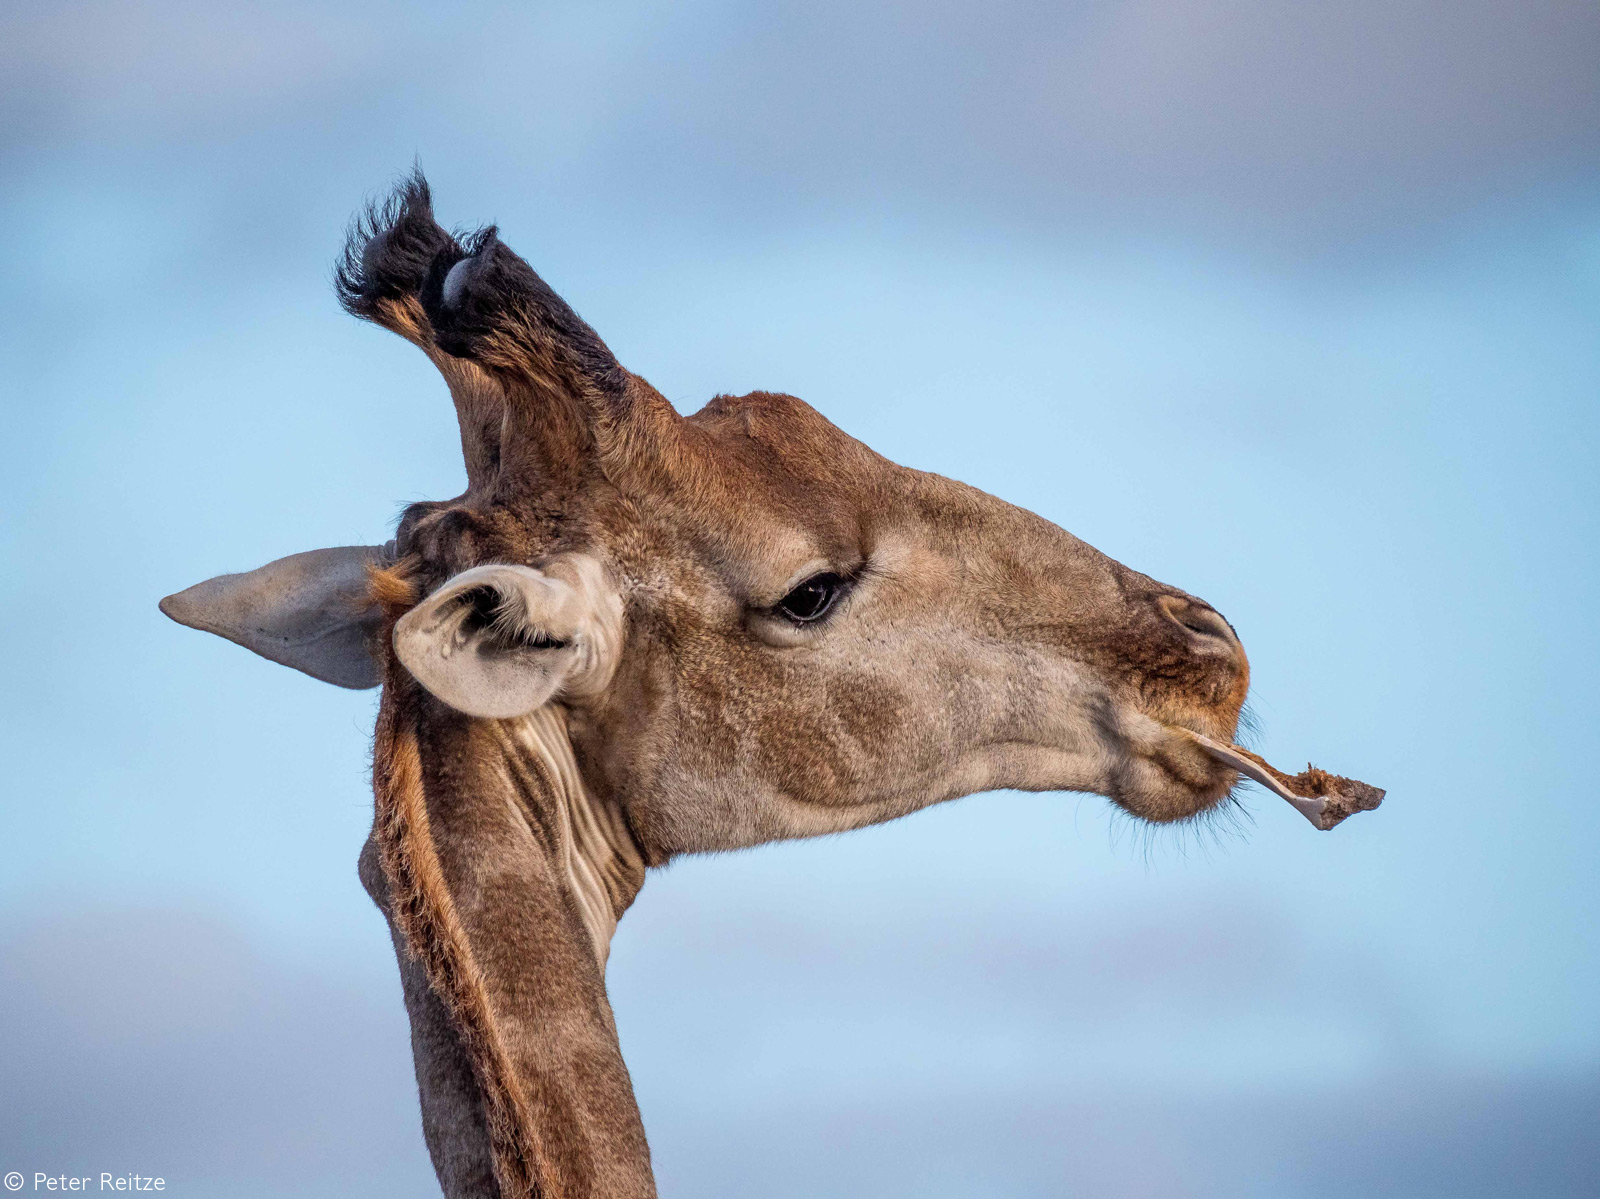 A giraffe bull gets some additional calcium by chewing a bone. Sibuya Game Reserve, South Africa © Peter Reitze